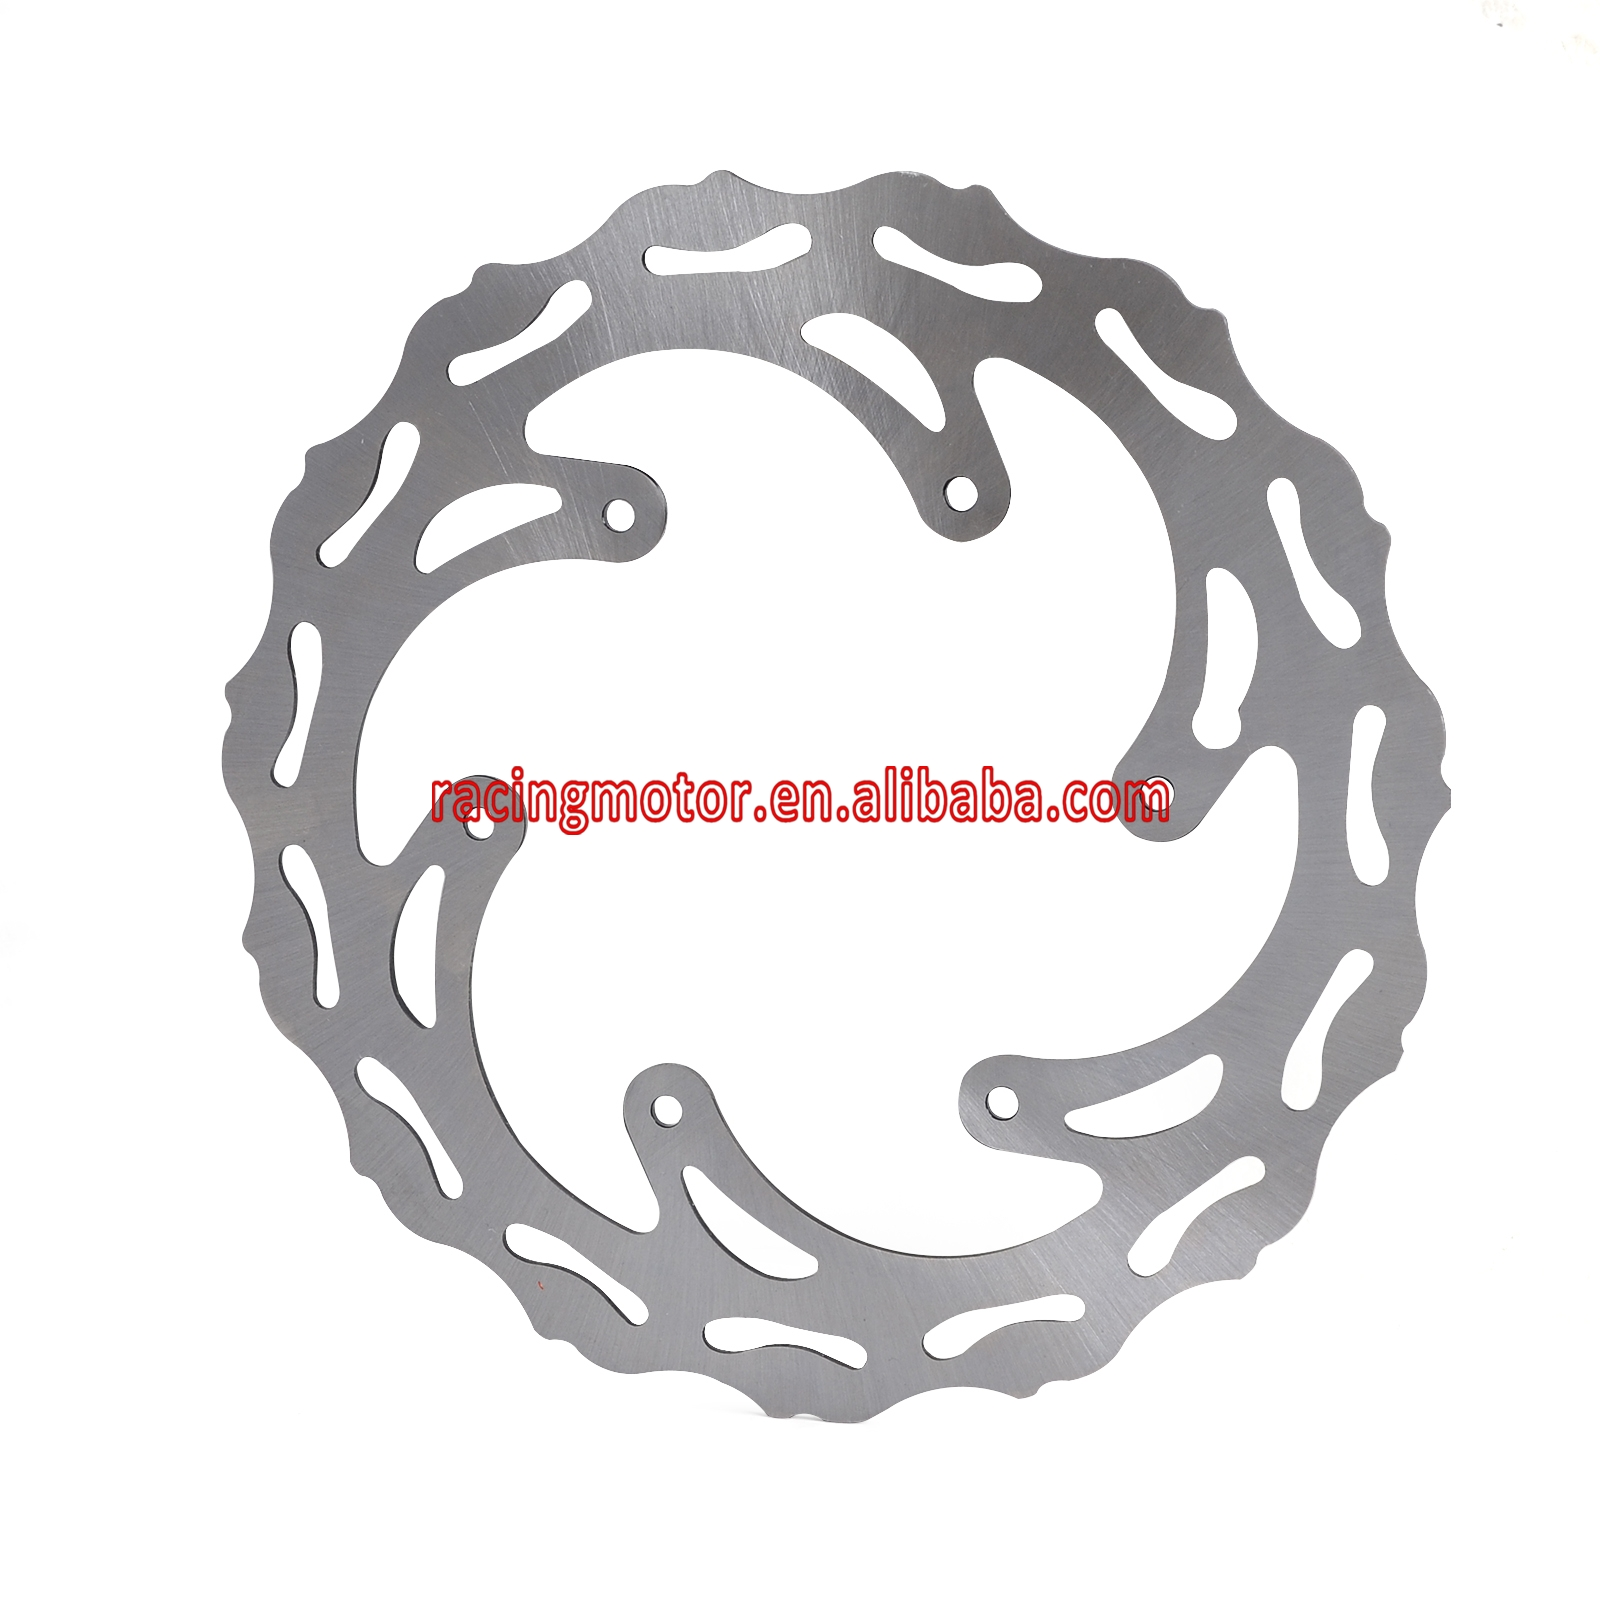 Motorcycle Front Brake Disc For KTM 125 200 250 300 400 450 500 525 530 XC SX SXF SX-F EXC EXCF EXCR EXC-F EXC-R NEW motorcycle front and rear brake pads for ktm xc exc 200 2004 2008 xc exc 250 400 450 2004 2007 black brake disc pad